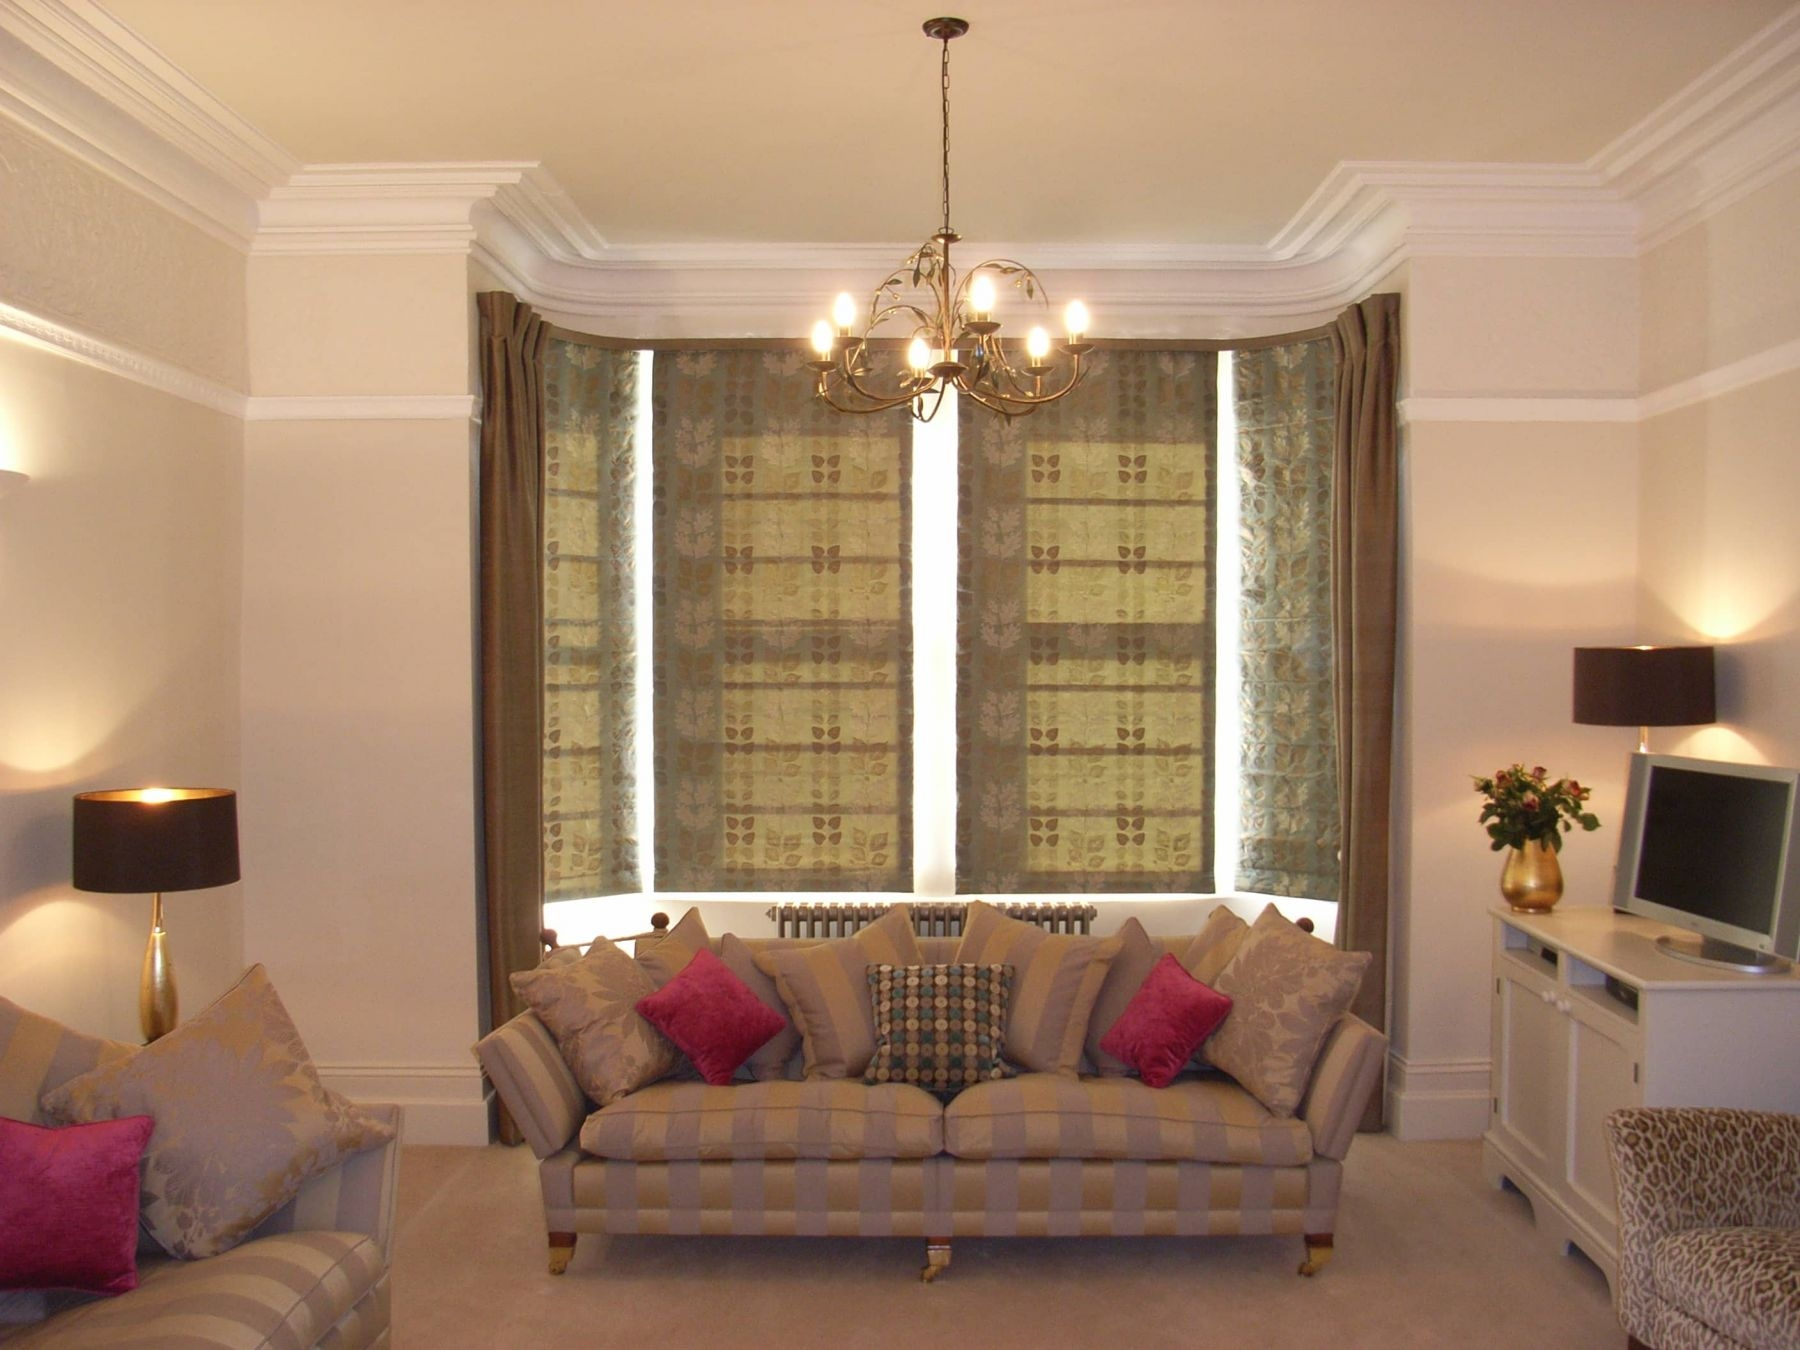 Living Rooms Style Within Intended For Long Roman Blinds (Image 9 of 15)